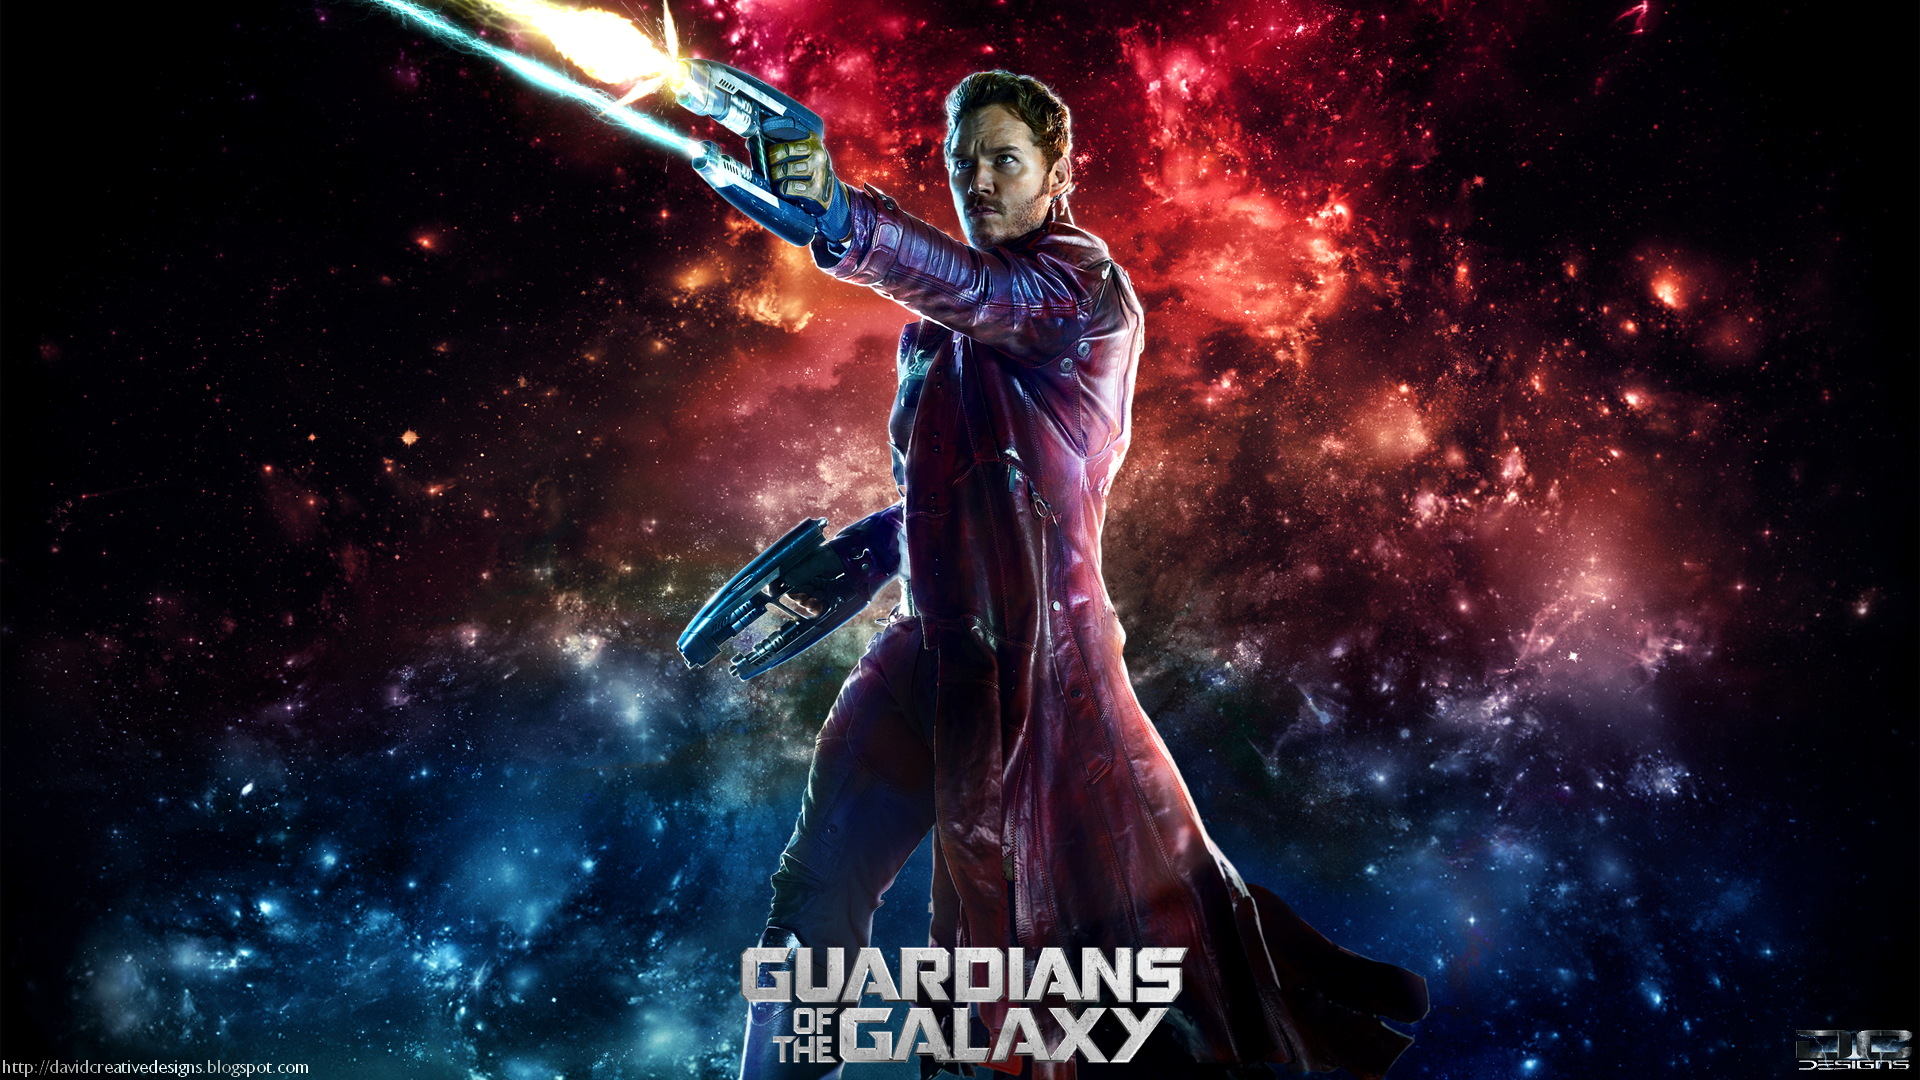 Guardians Of The Galaxy Hd Wallpapers Backgrounds Filme